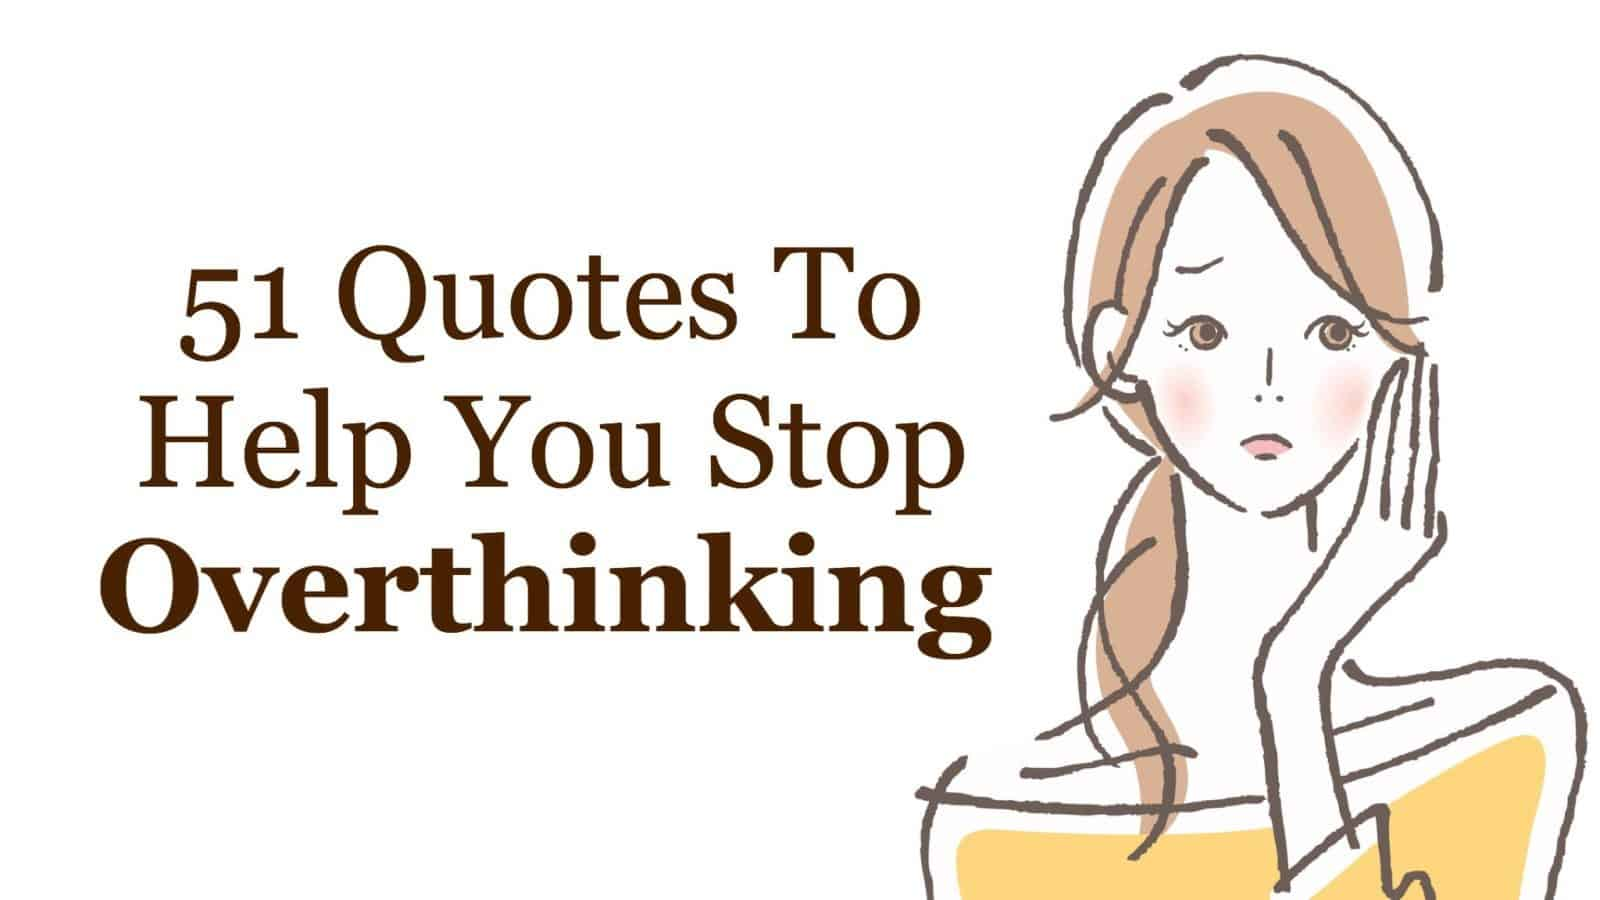 Analyzing Quotes 51 Quotes To Help You Stop Over Thinking